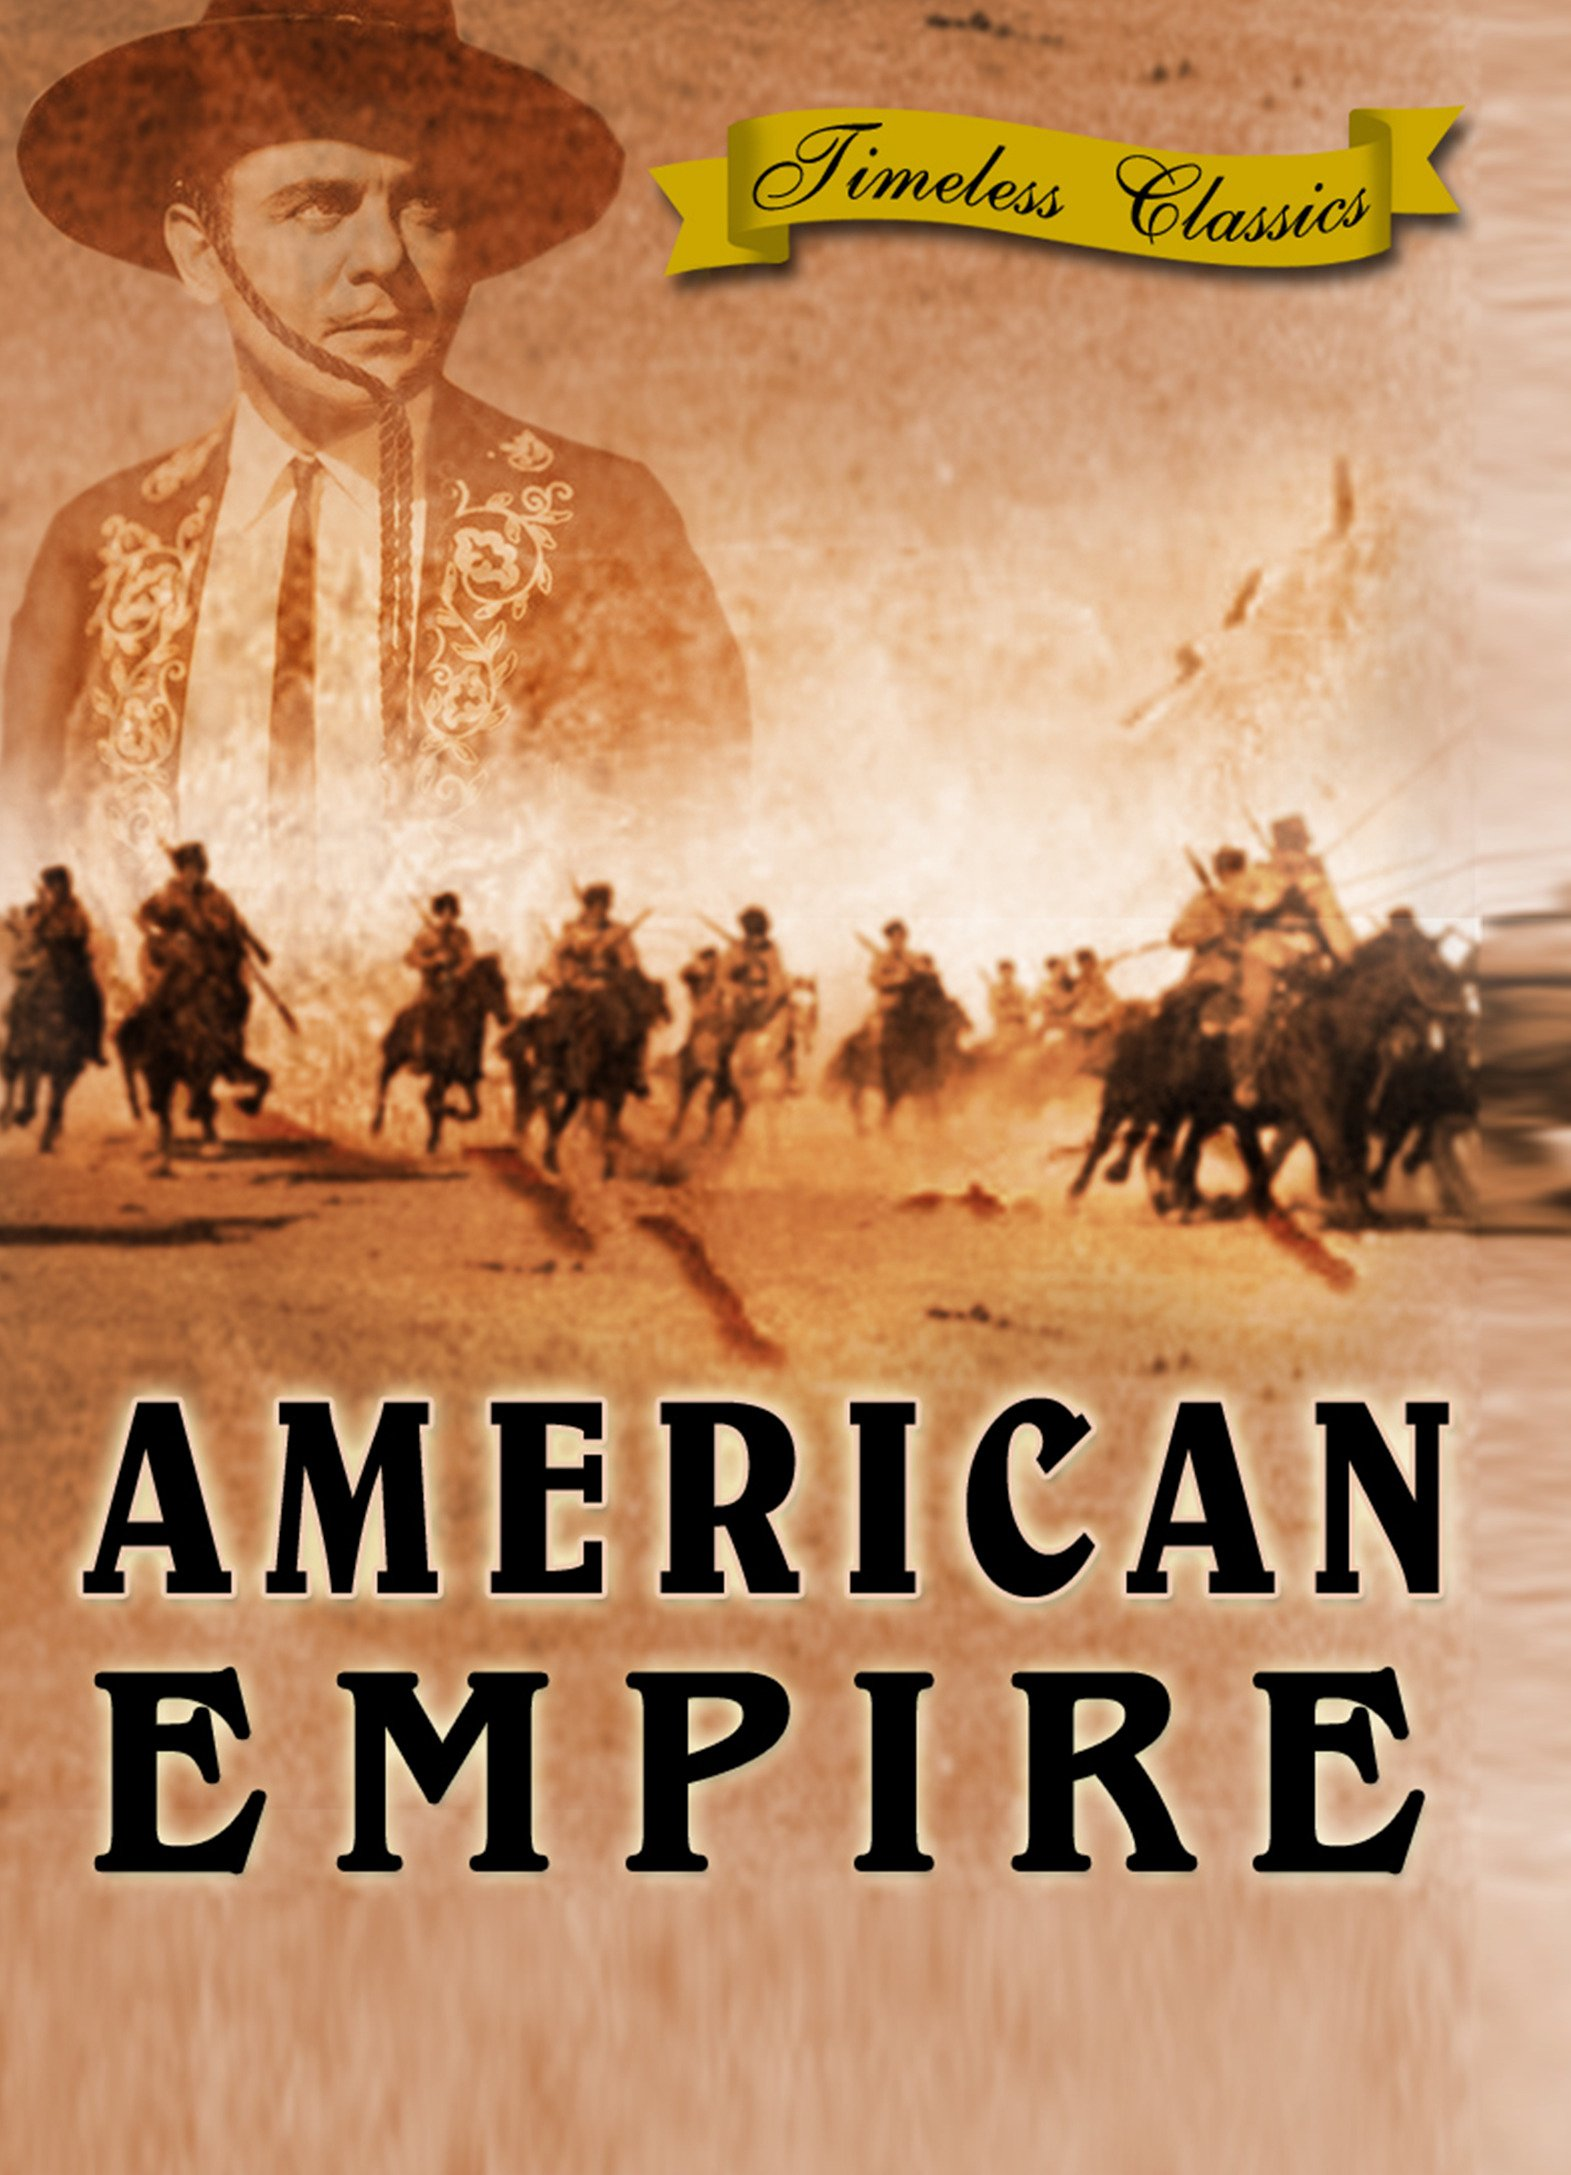 American Empire (1942) on Amazon Prime Video UK